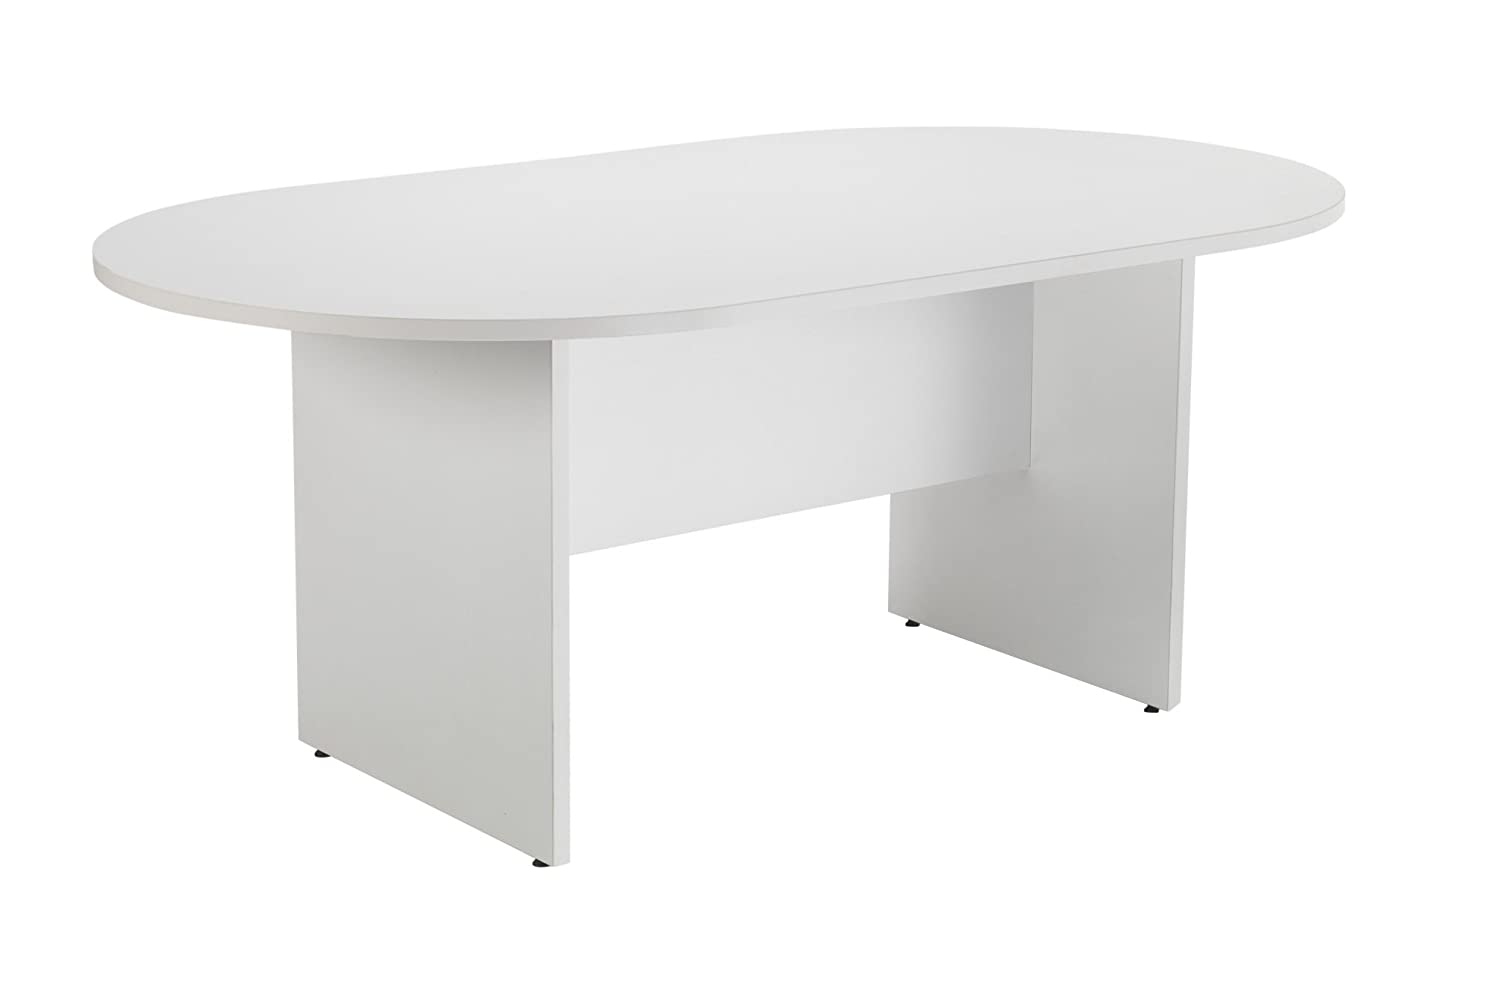 Office Hippo D-End Meeting Table, 180 cm - White TC Group OHD0100WH